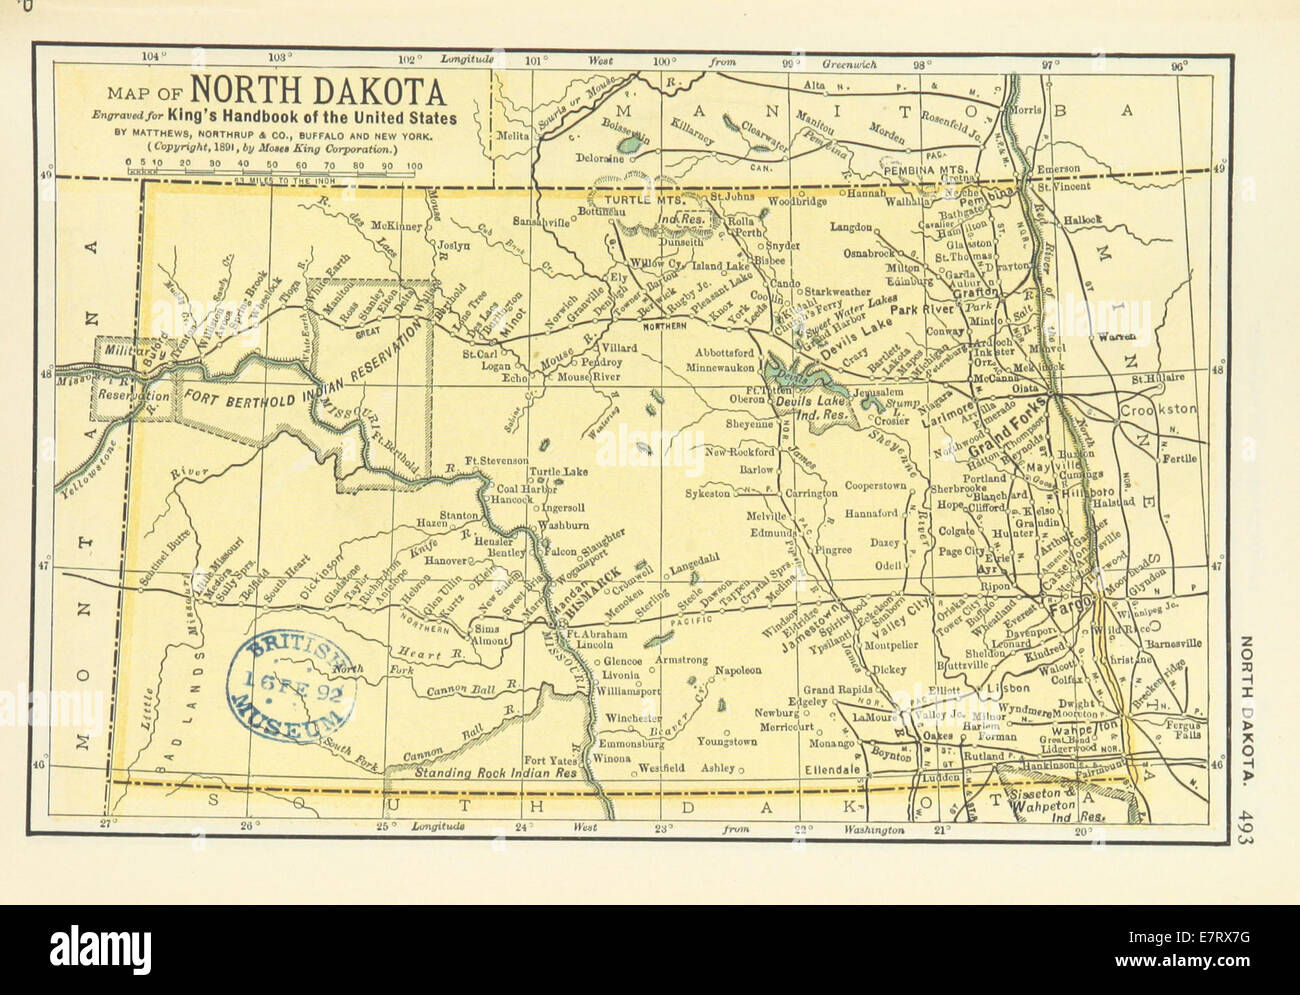 Map Of North Dakota Stock Photos Images Oberon Wire Diagram Us Maps1891 P495 Image